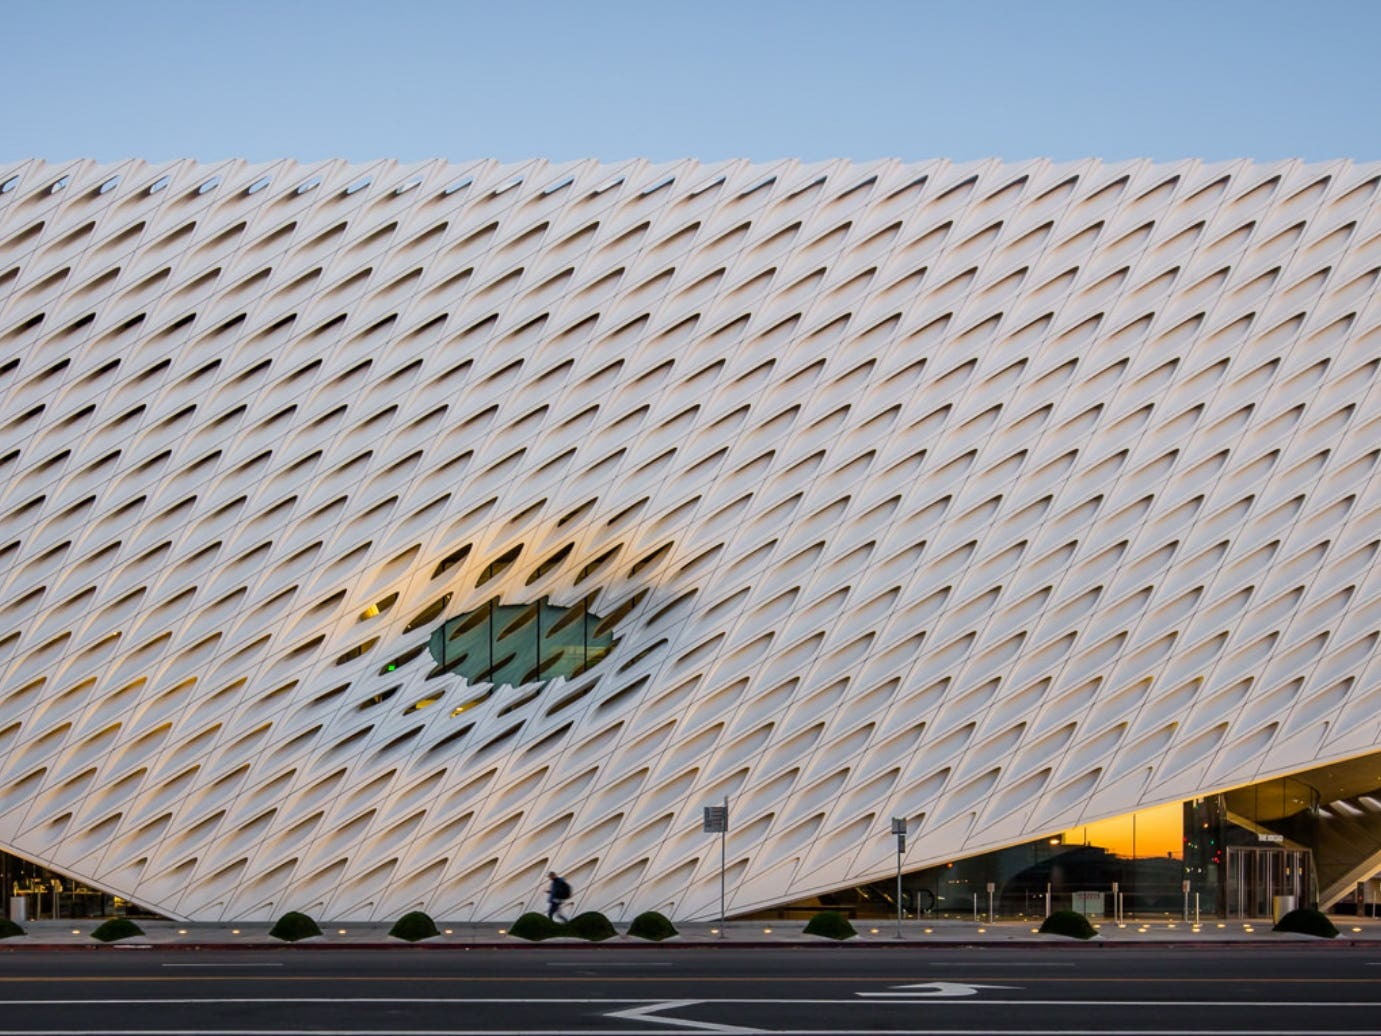 Main image for event titled Broad Museum (REOPENING TO THE PUBLIC)